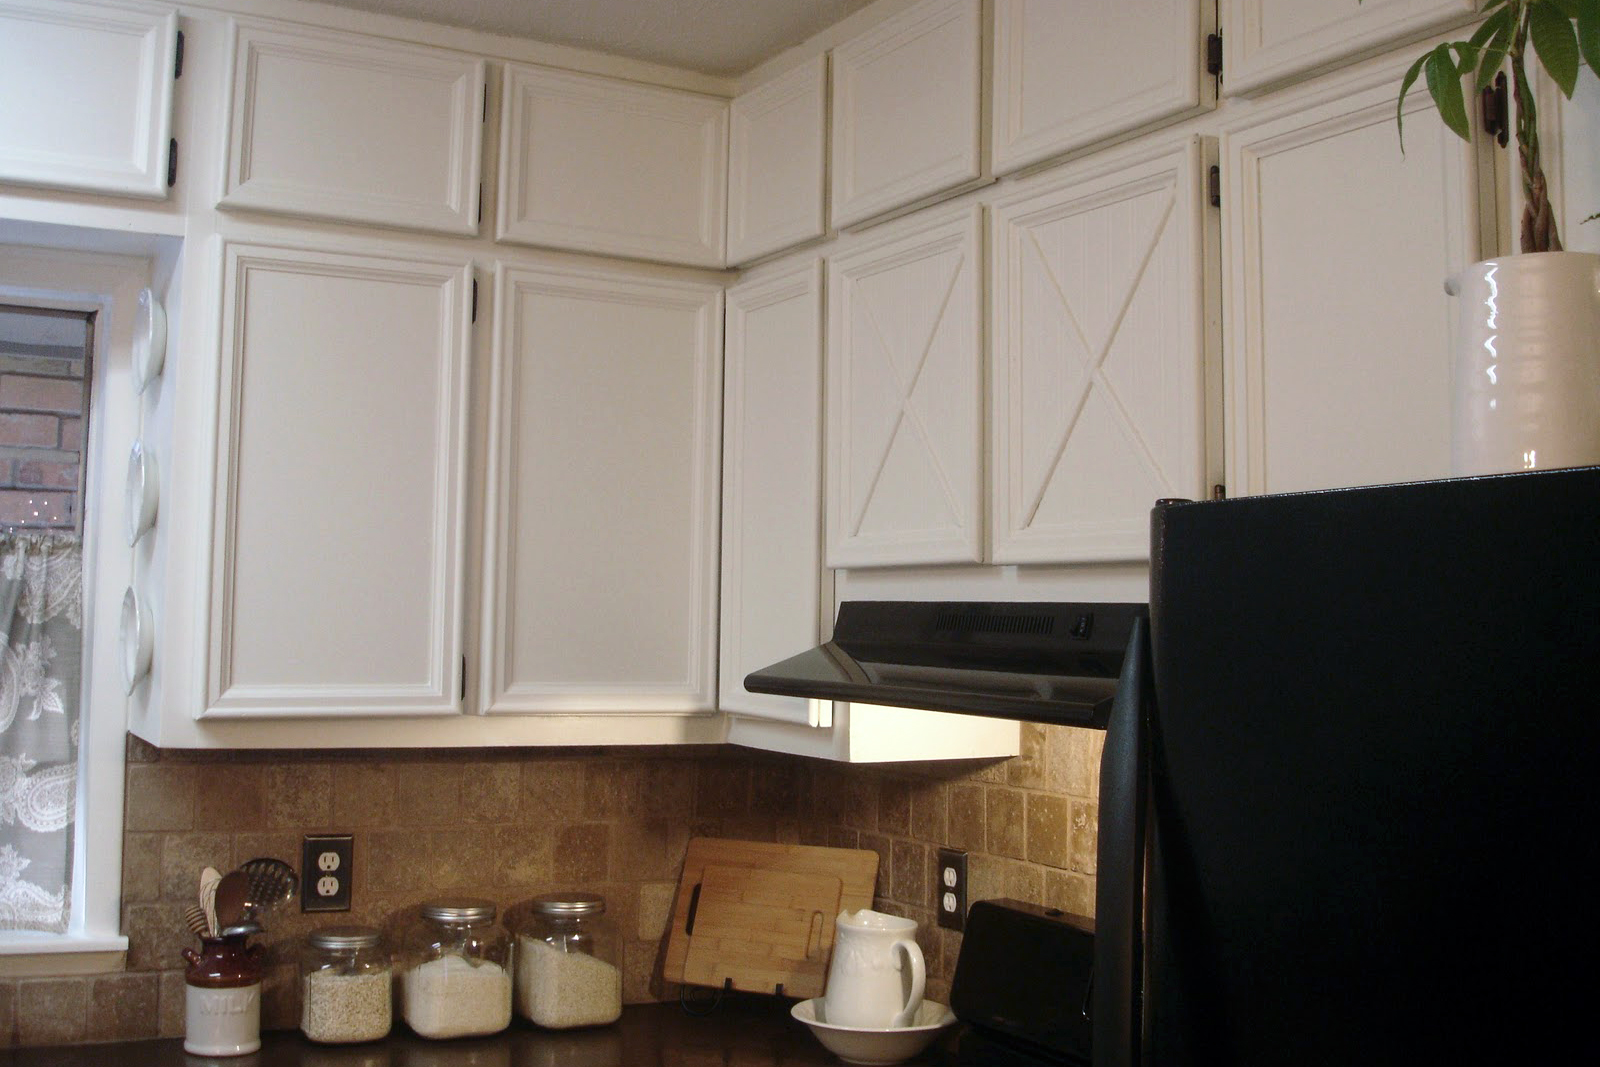 How to Update Kitchen Cabinets for Under $100 | Kitchen Cabinet Ideas